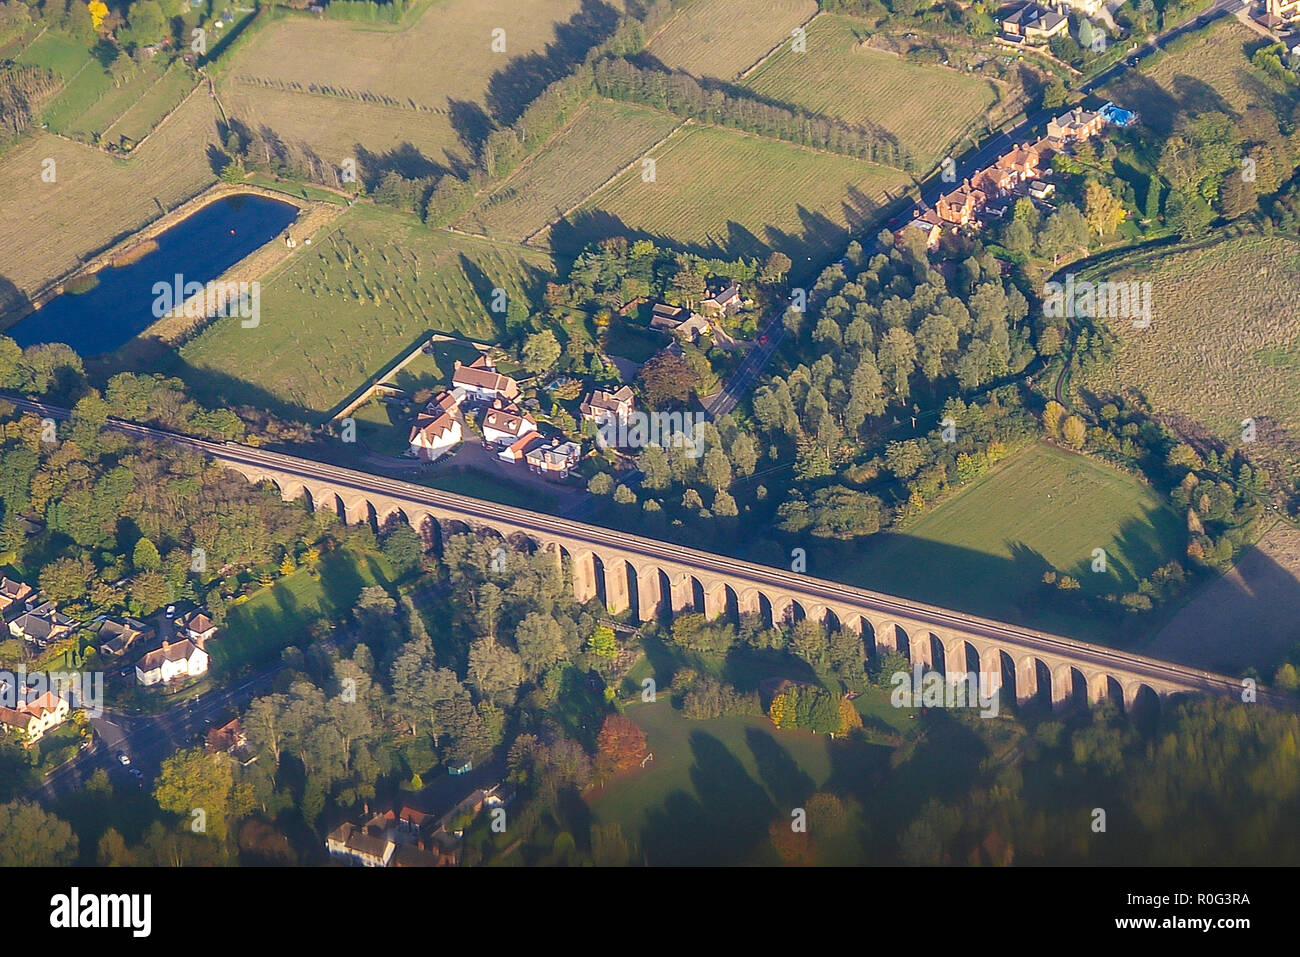 aerial-view-of-chappel-viaduct-wakes-colne-essex-uk-chappel-viaduct-is-a-railway-viaduct-that-crosses-the-river-colne-in-the-colne-valley-in-essex-R0G3RA.jpg